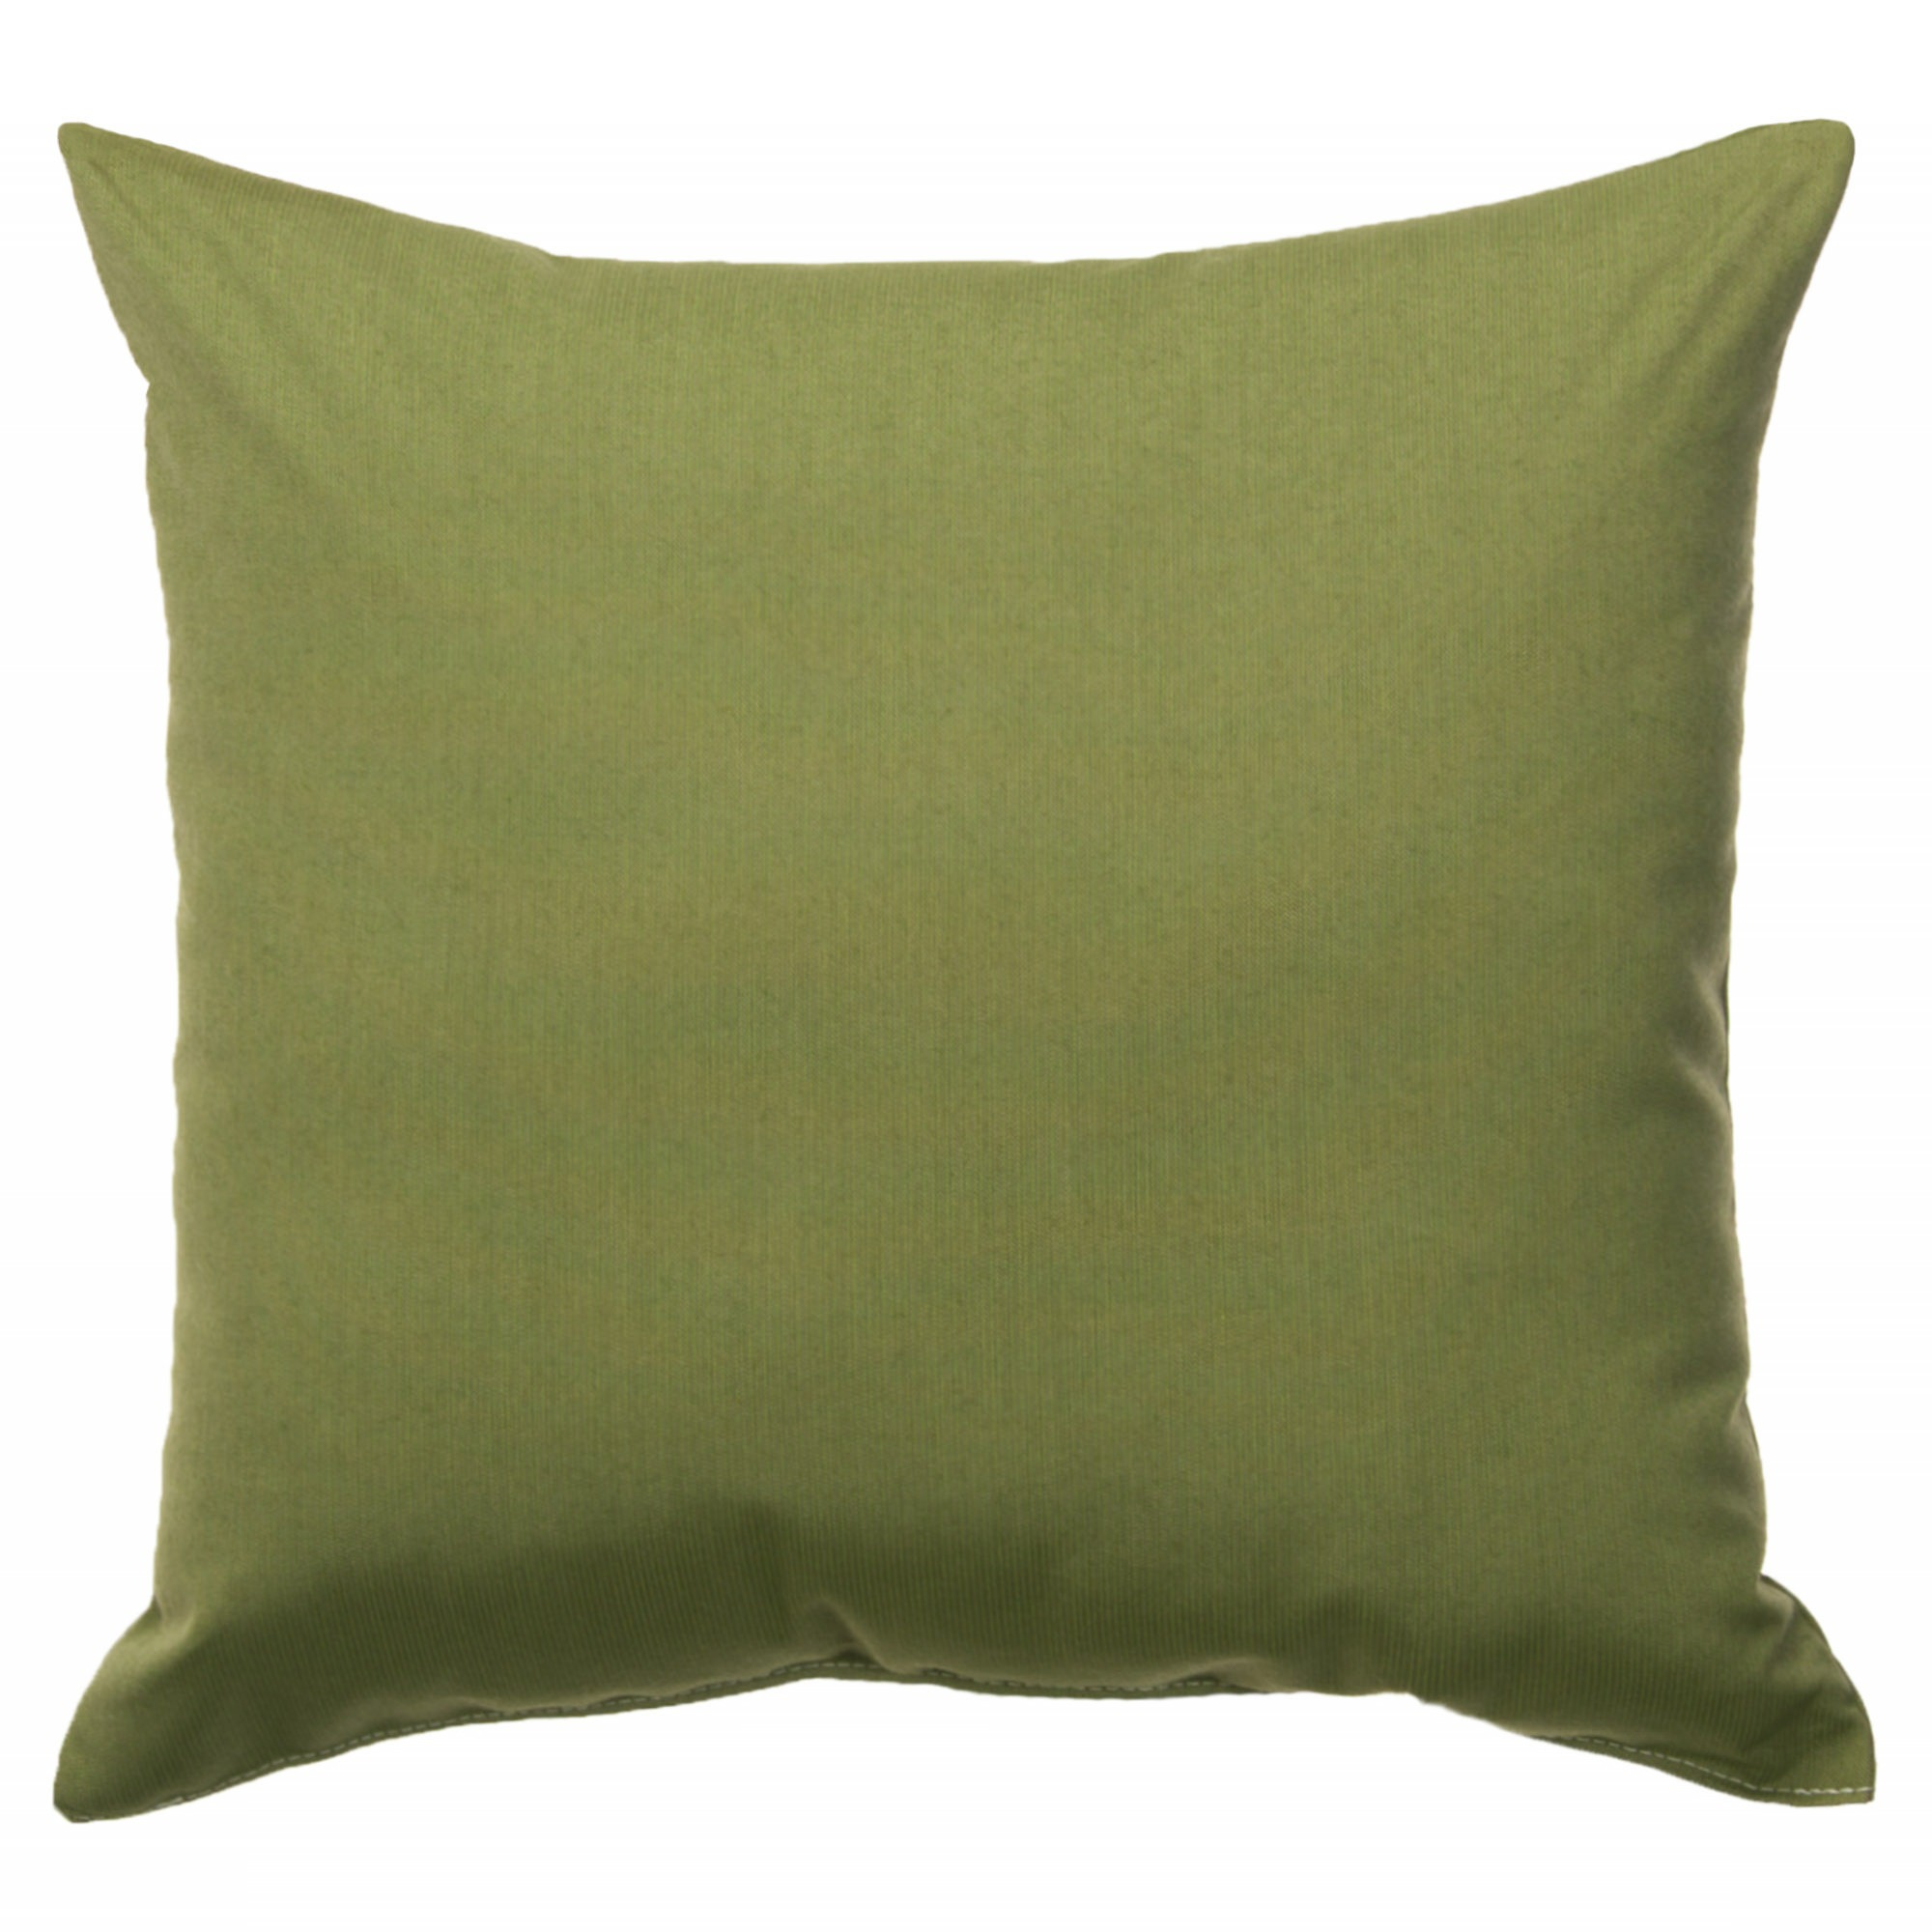 Genial Spectrum Cilantro Sunbrella Outdoor Throw Pillow (24 X 24)